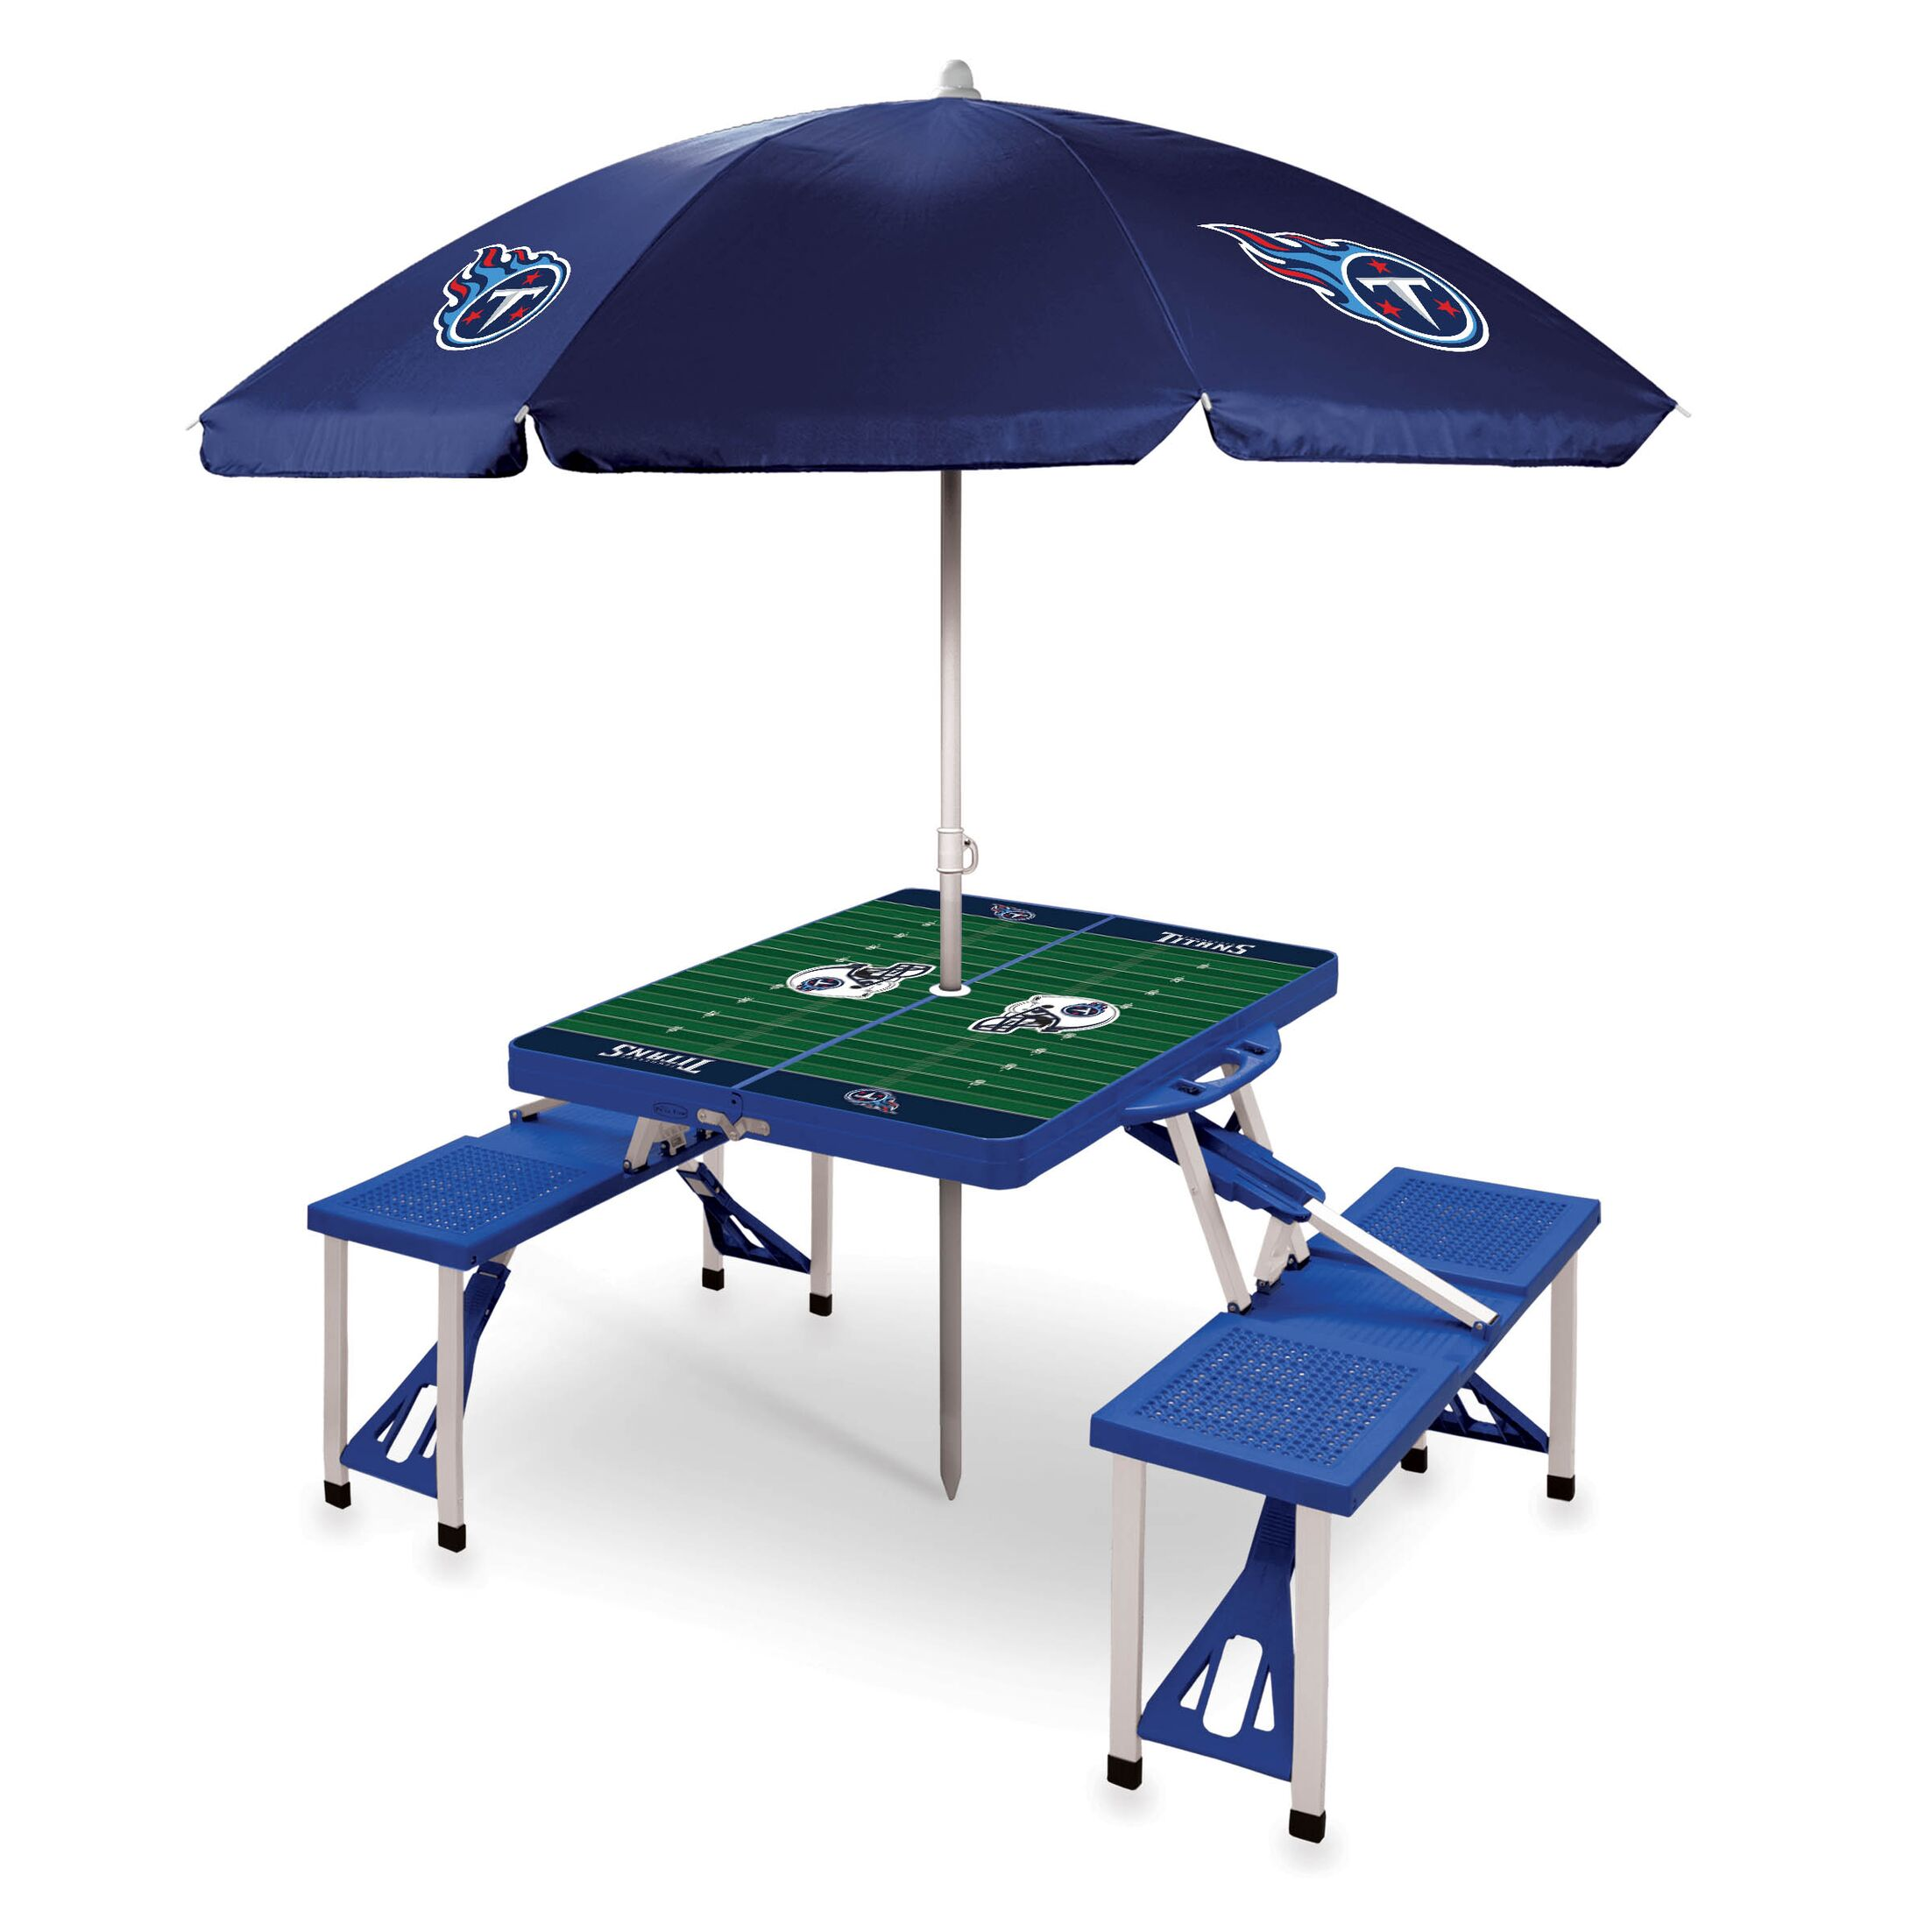 Picnic Table NFL Team: Tennessee Titans/Blue